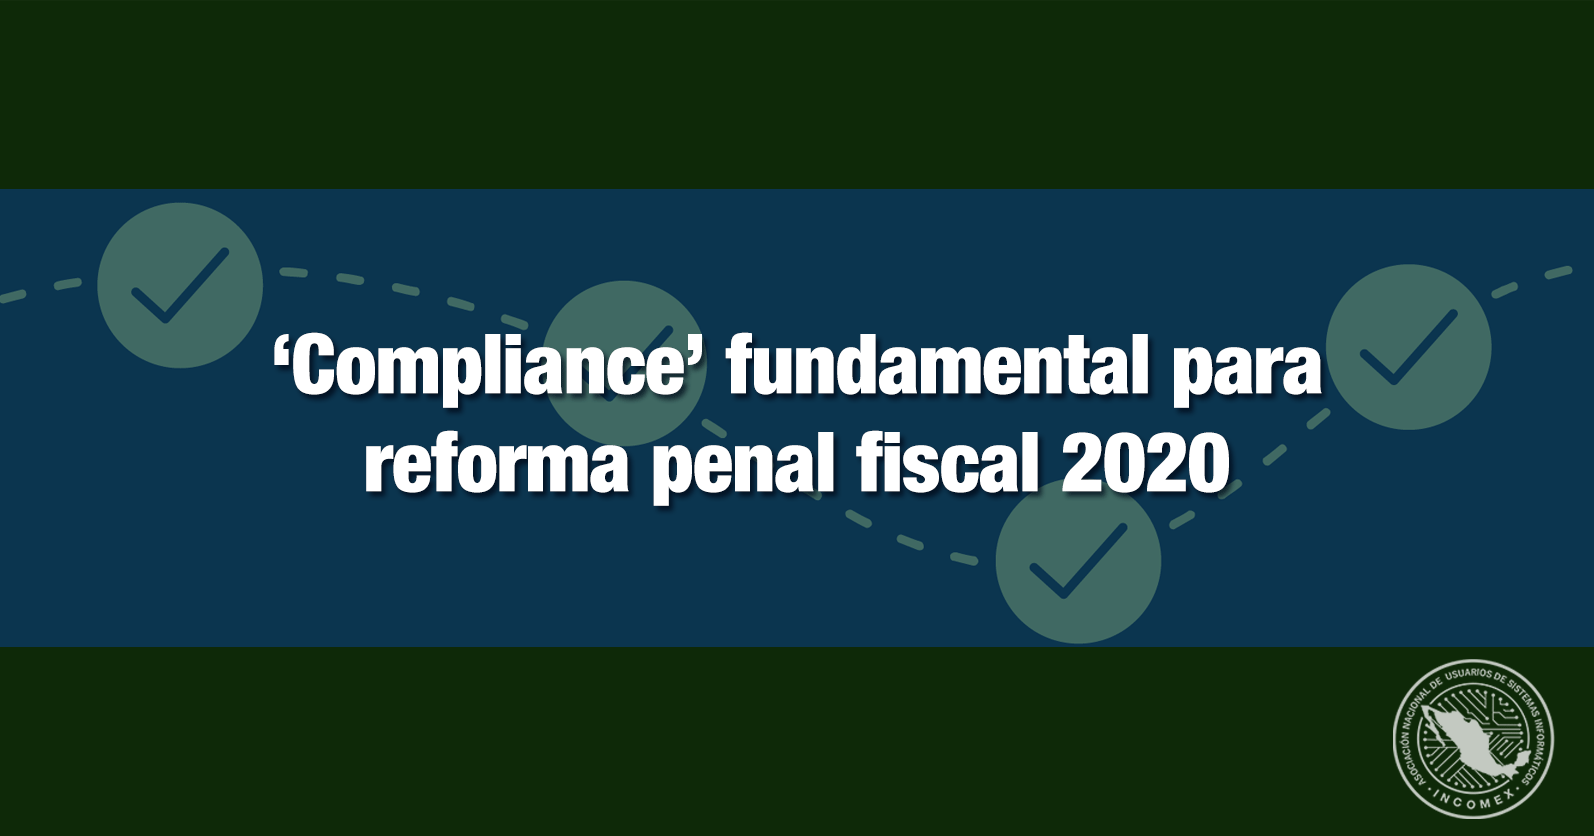 'Compliance' fundamental para reforma penal fiscal 2020